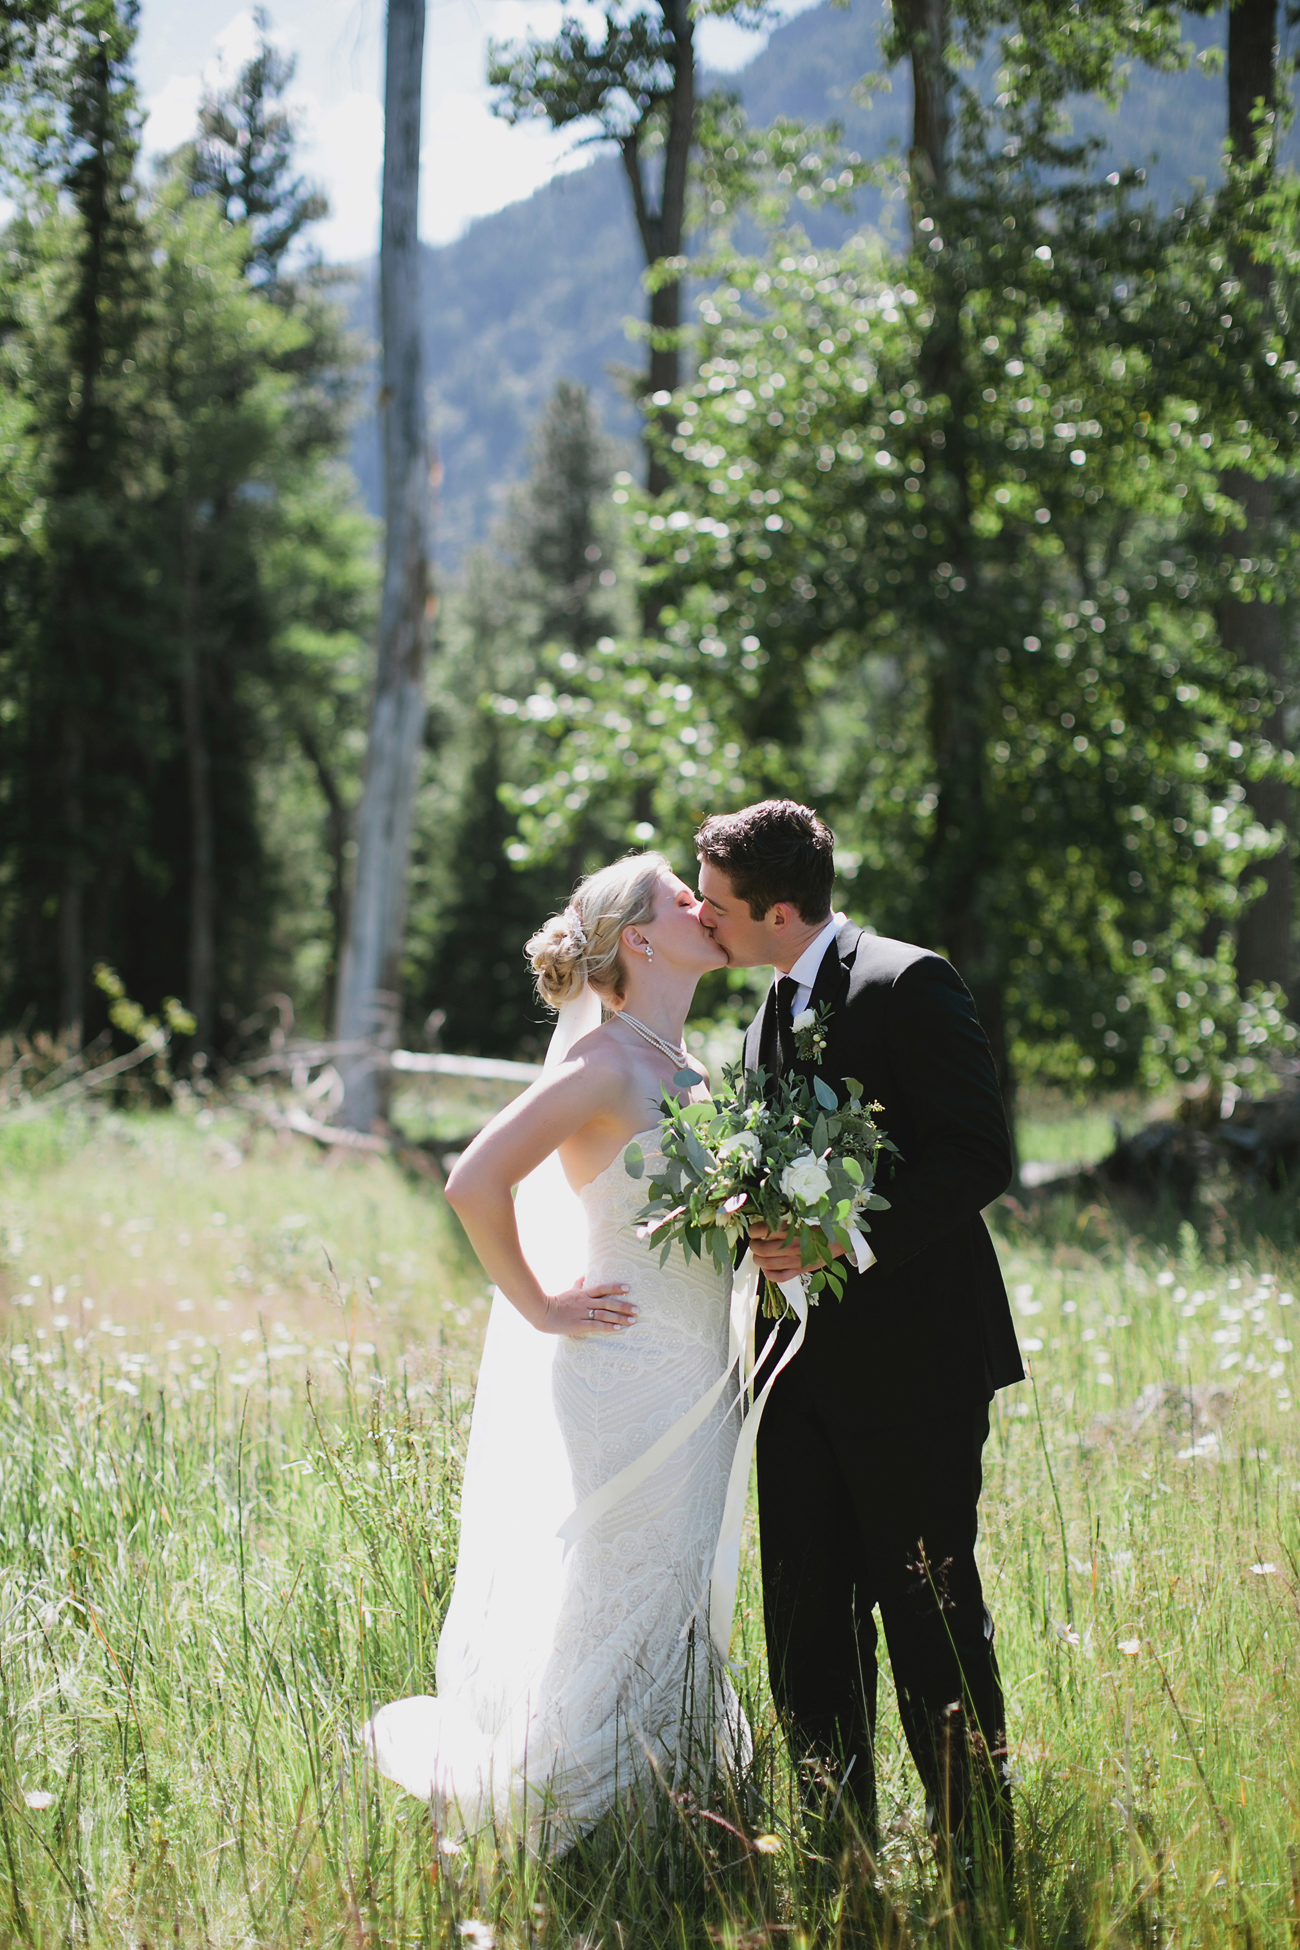 Eastern Oregon Lake Wallowa Wedding Photography by Ali Walker Walla Walla Wedding Photographer 035.JPG